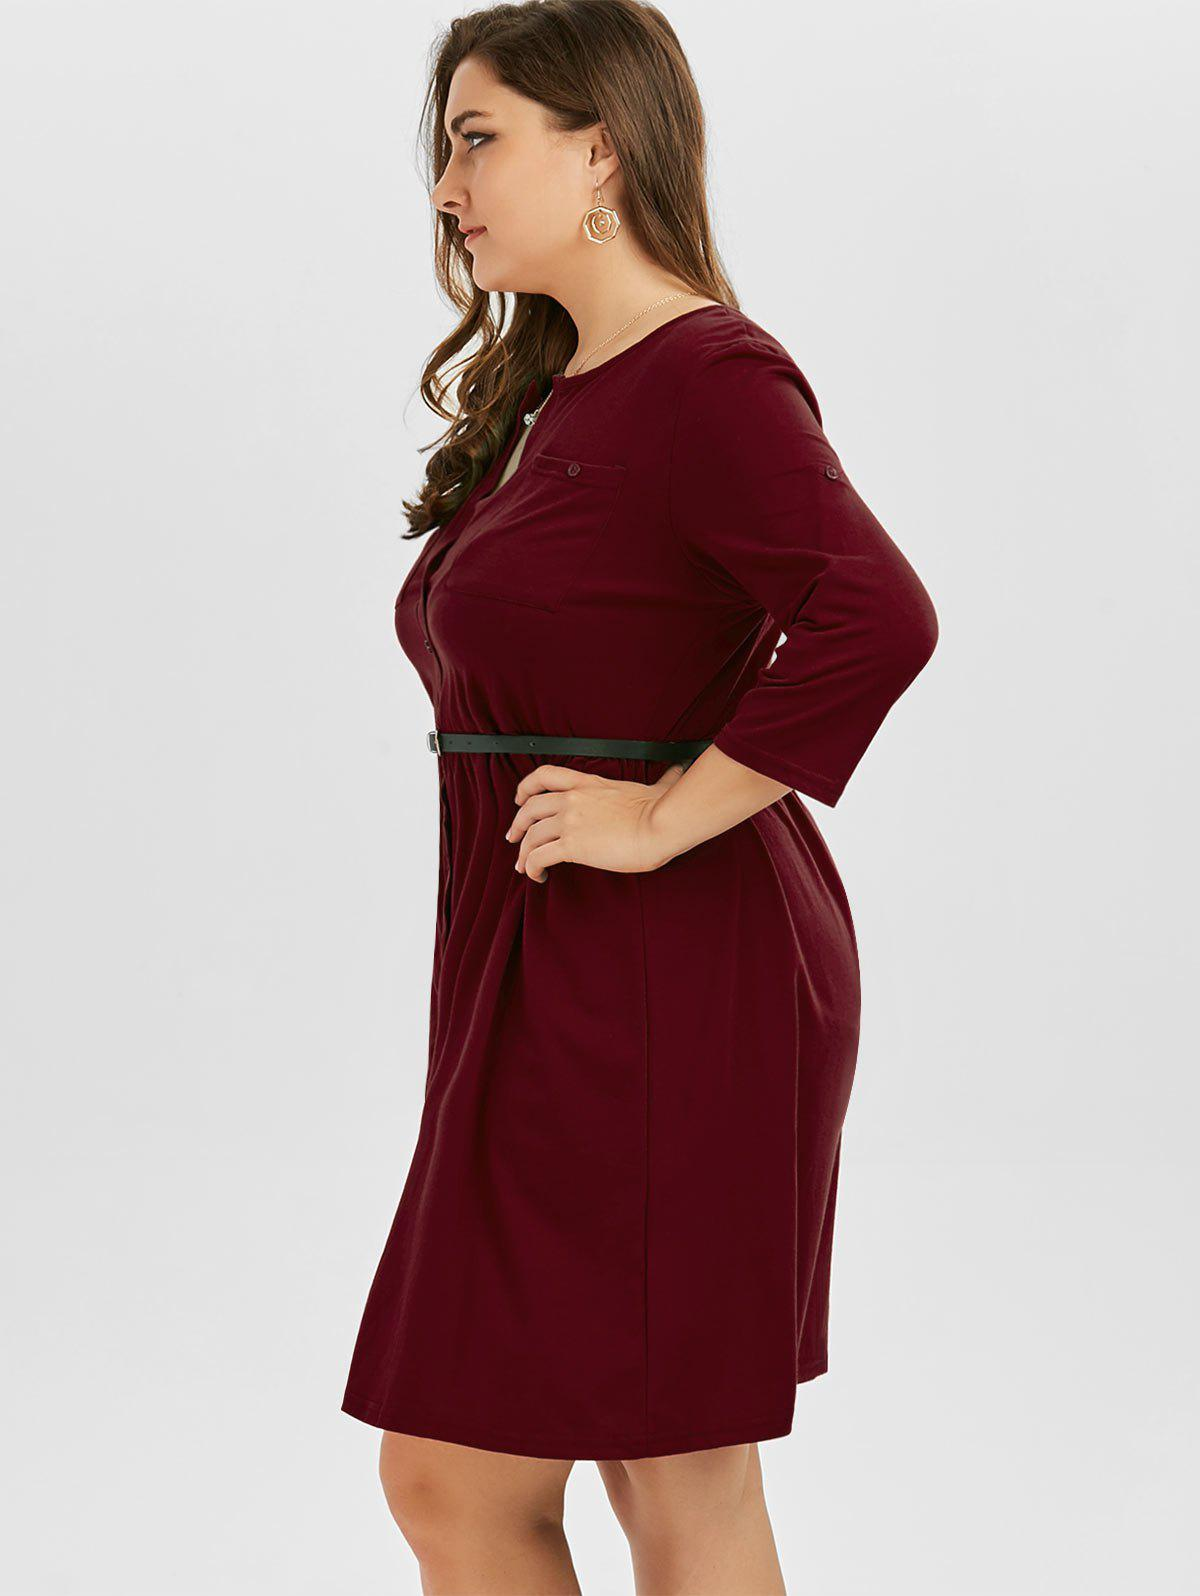 Robe Taille Up - Rouge vineux 4XL